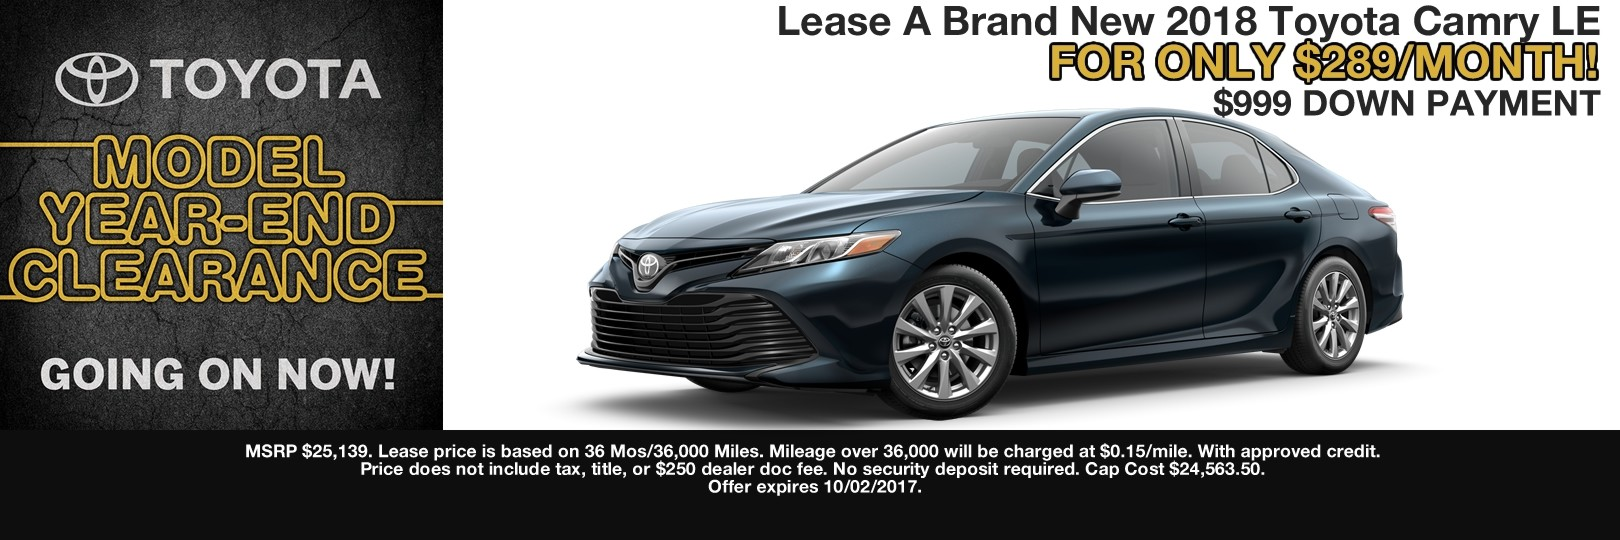 2018 CAMRY LEASE SPECIAL CAIN TOYOTA NORTH CANTON OHIO